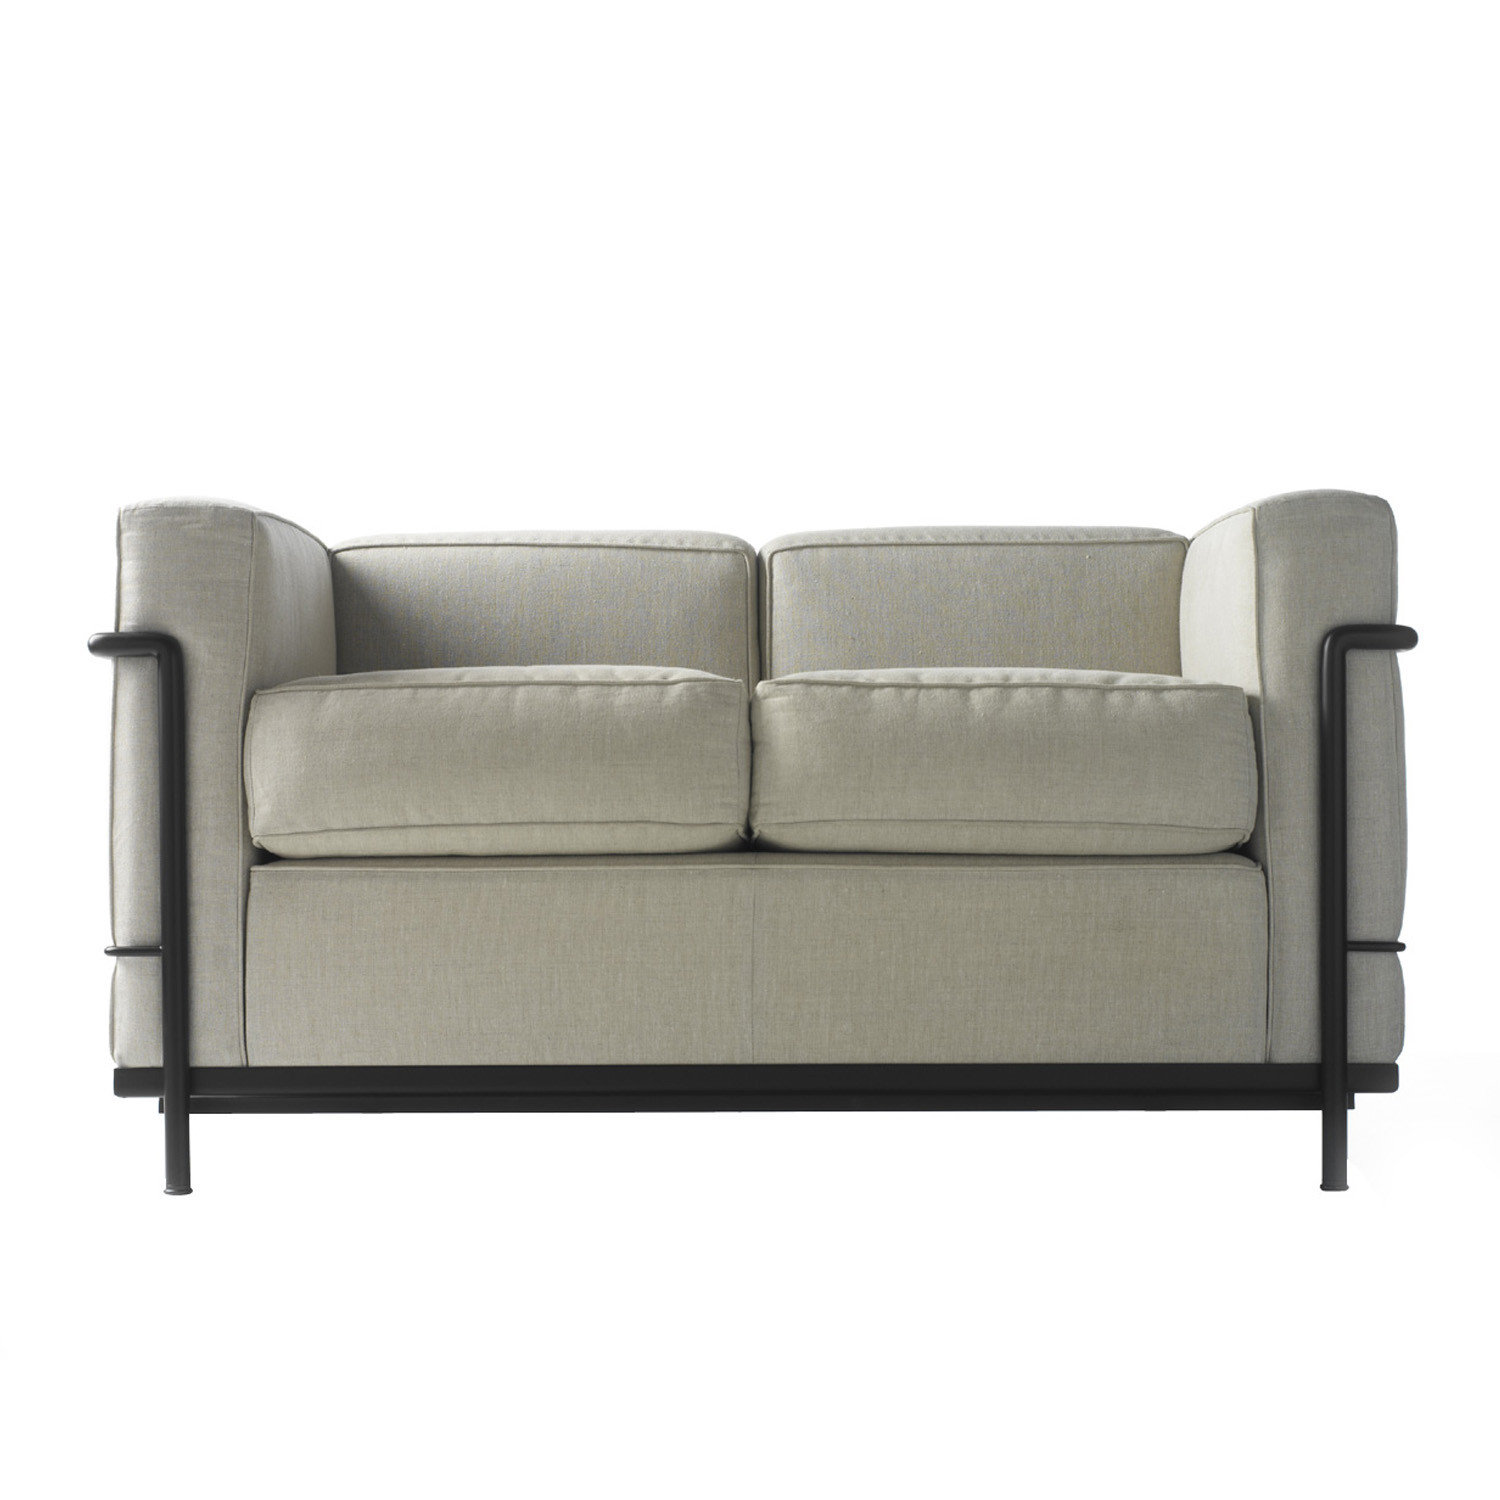 LC2 Sofa Soft Seating